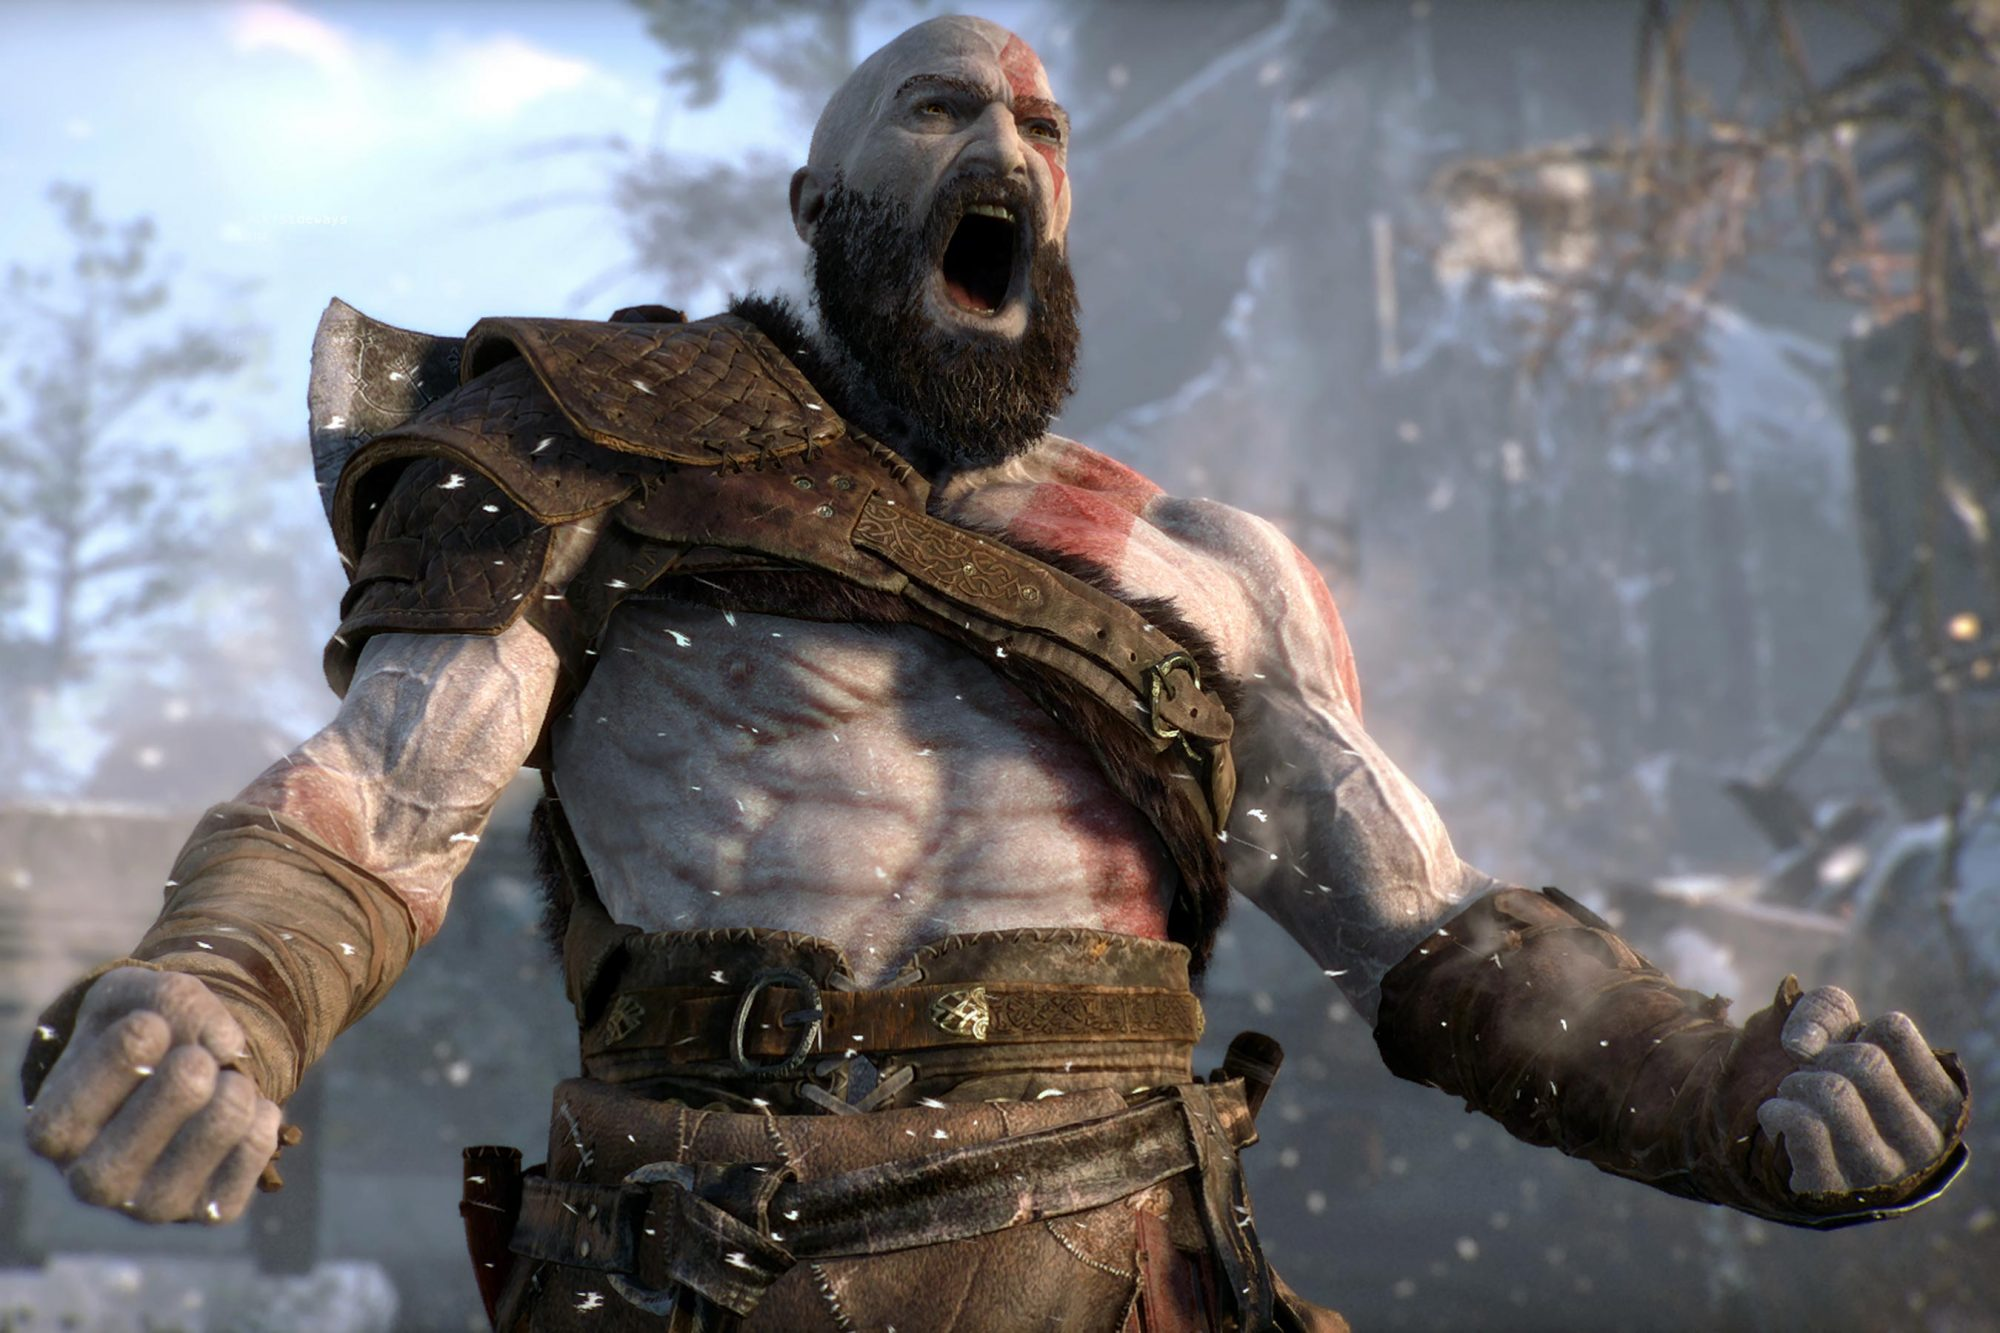 God of War video game (2018) CR: Sony Interactive Entertainment